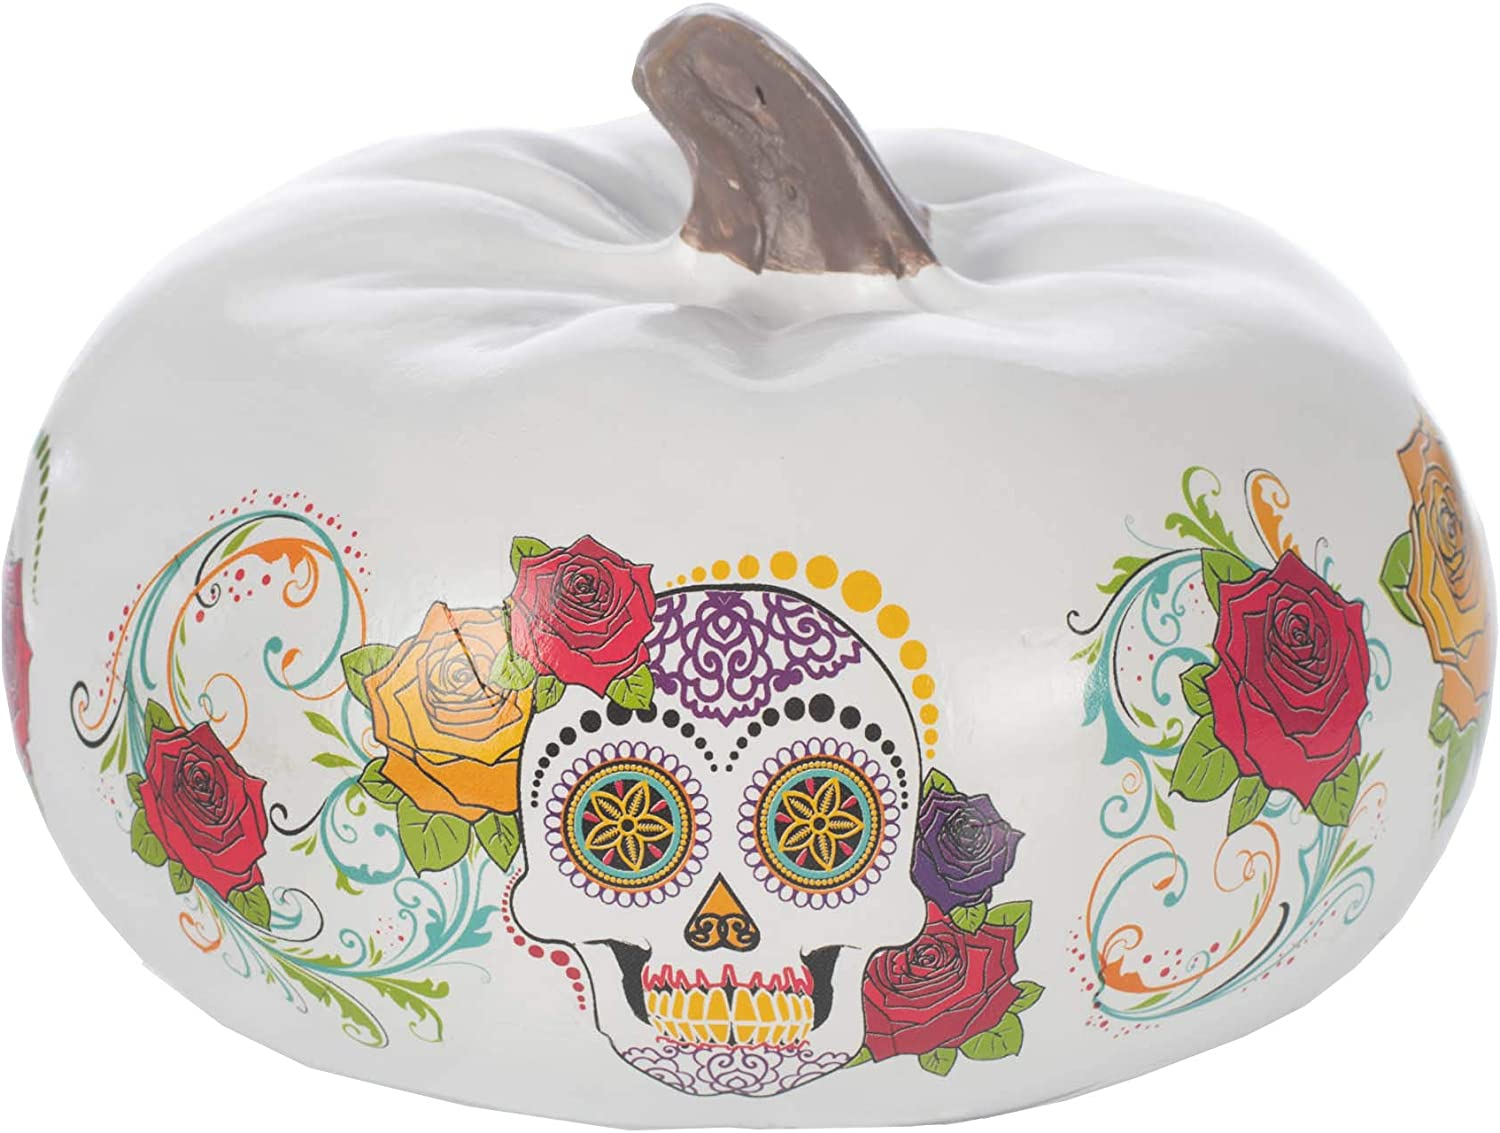 Elanze Designs Floral 6 inch Resin Day of The Dead Decorative Pumpkin